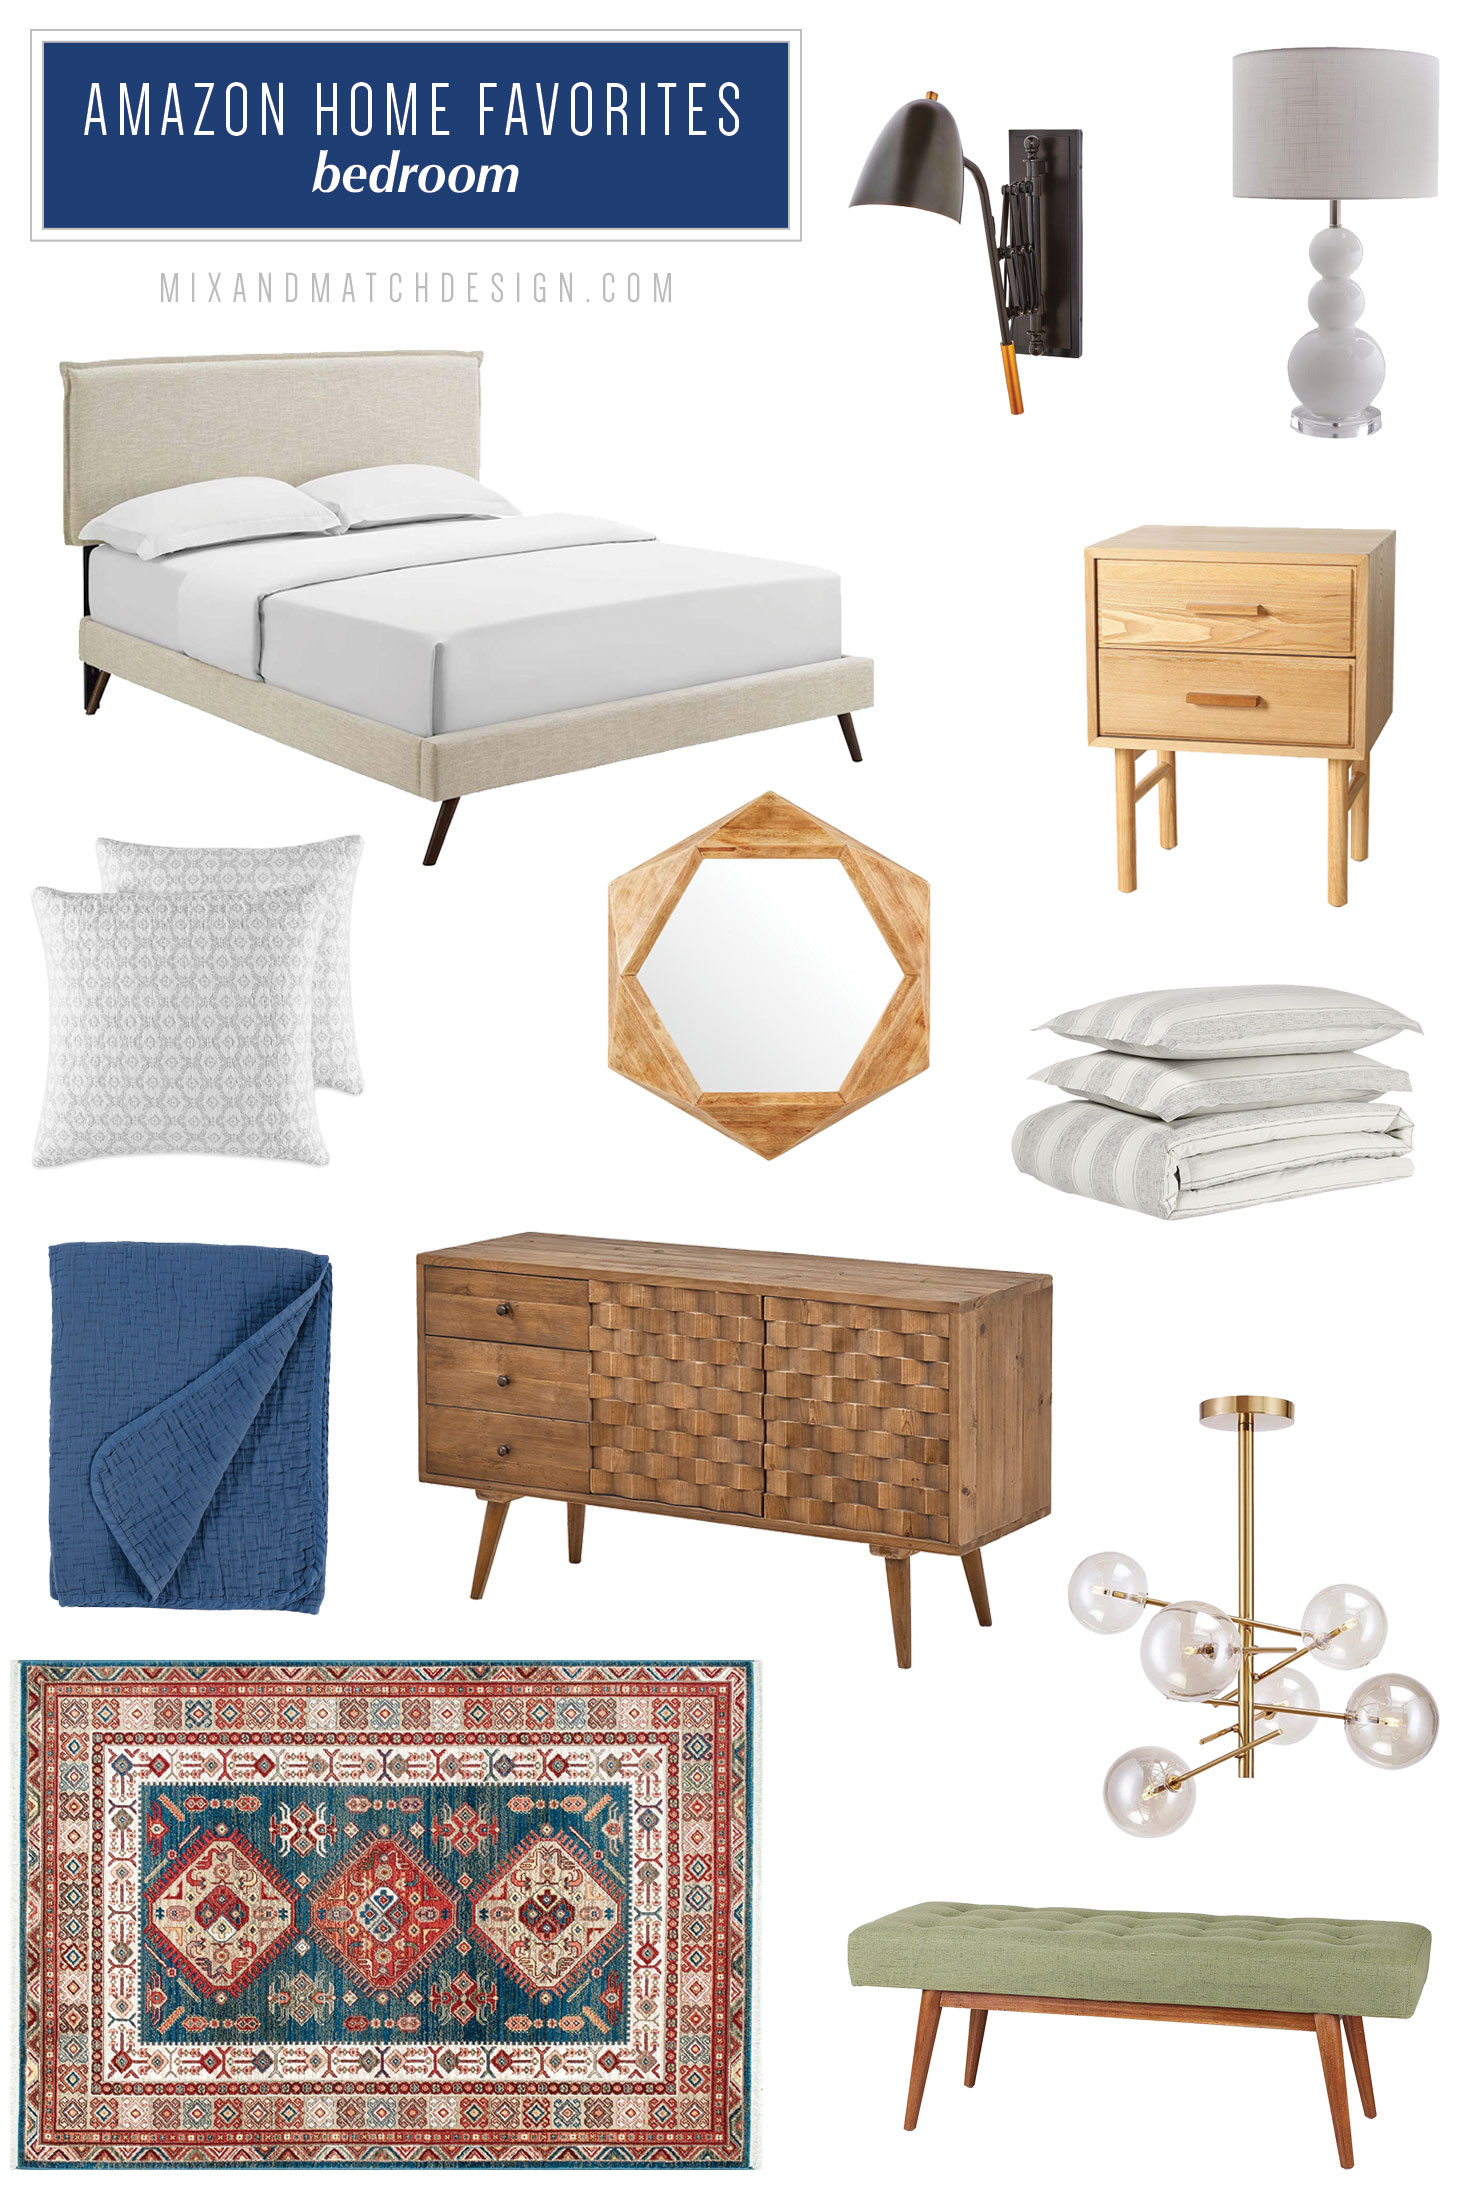 Amazon has an ever-growing selection of home furniture and decor and I've pulled together a few of my favorites for your living room and bedroom. They have pieces for just about every style - farmhouse, industrial, mid-century, and more!